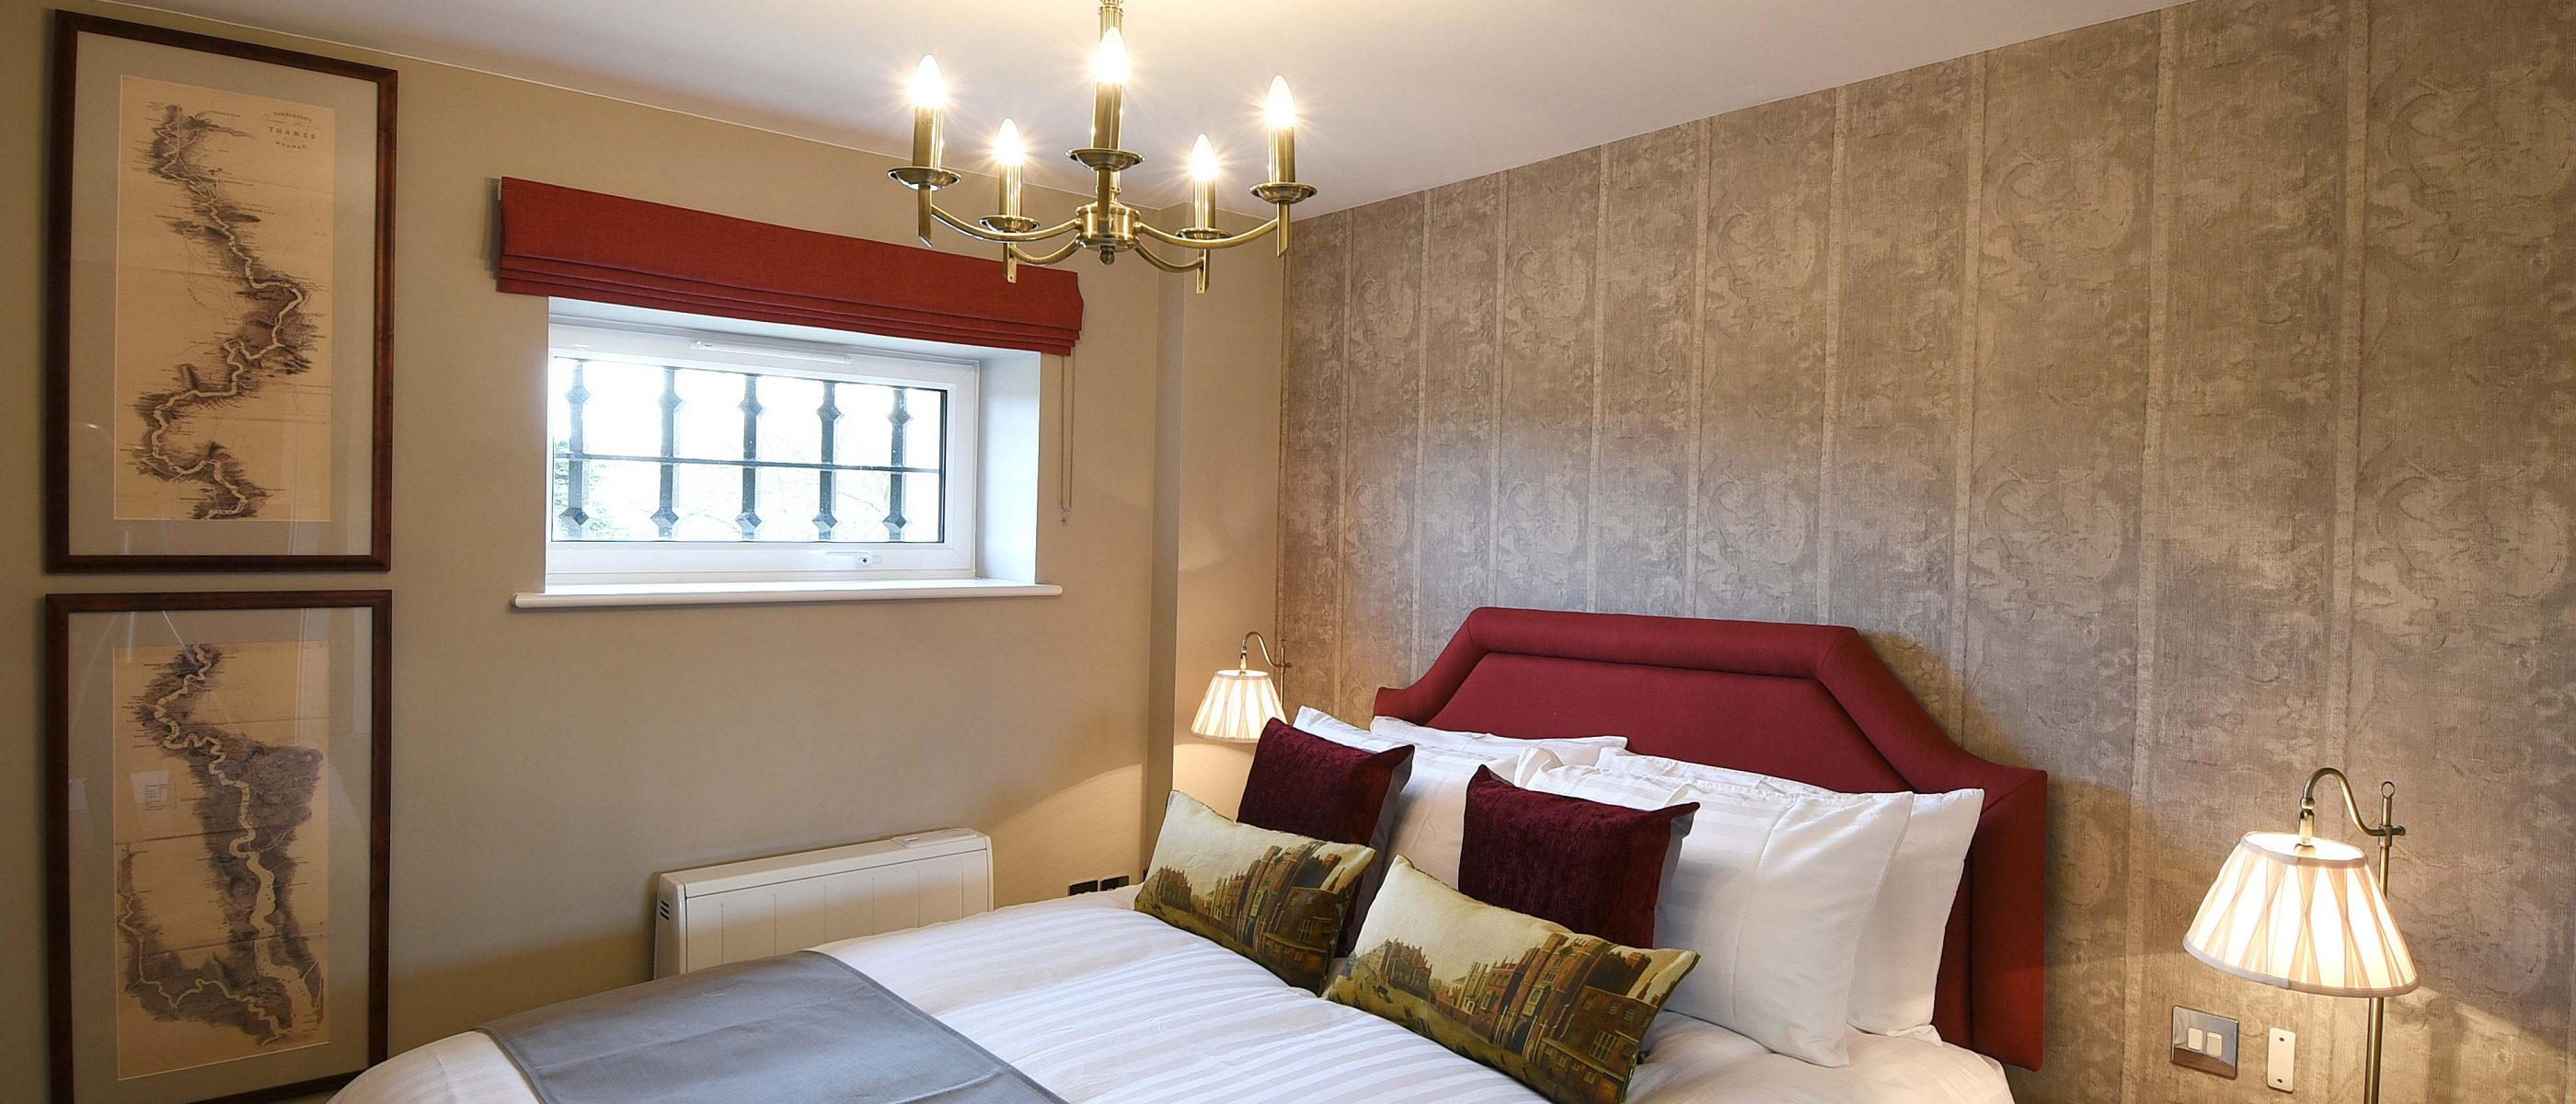 The bedroom in the Tomkins Suite: a one bedroom luxury serviced apartment at The Old Gaol, by the River Thames in Abingdon, near Oxford. Ideal accommodation for corporate or holiday short lets